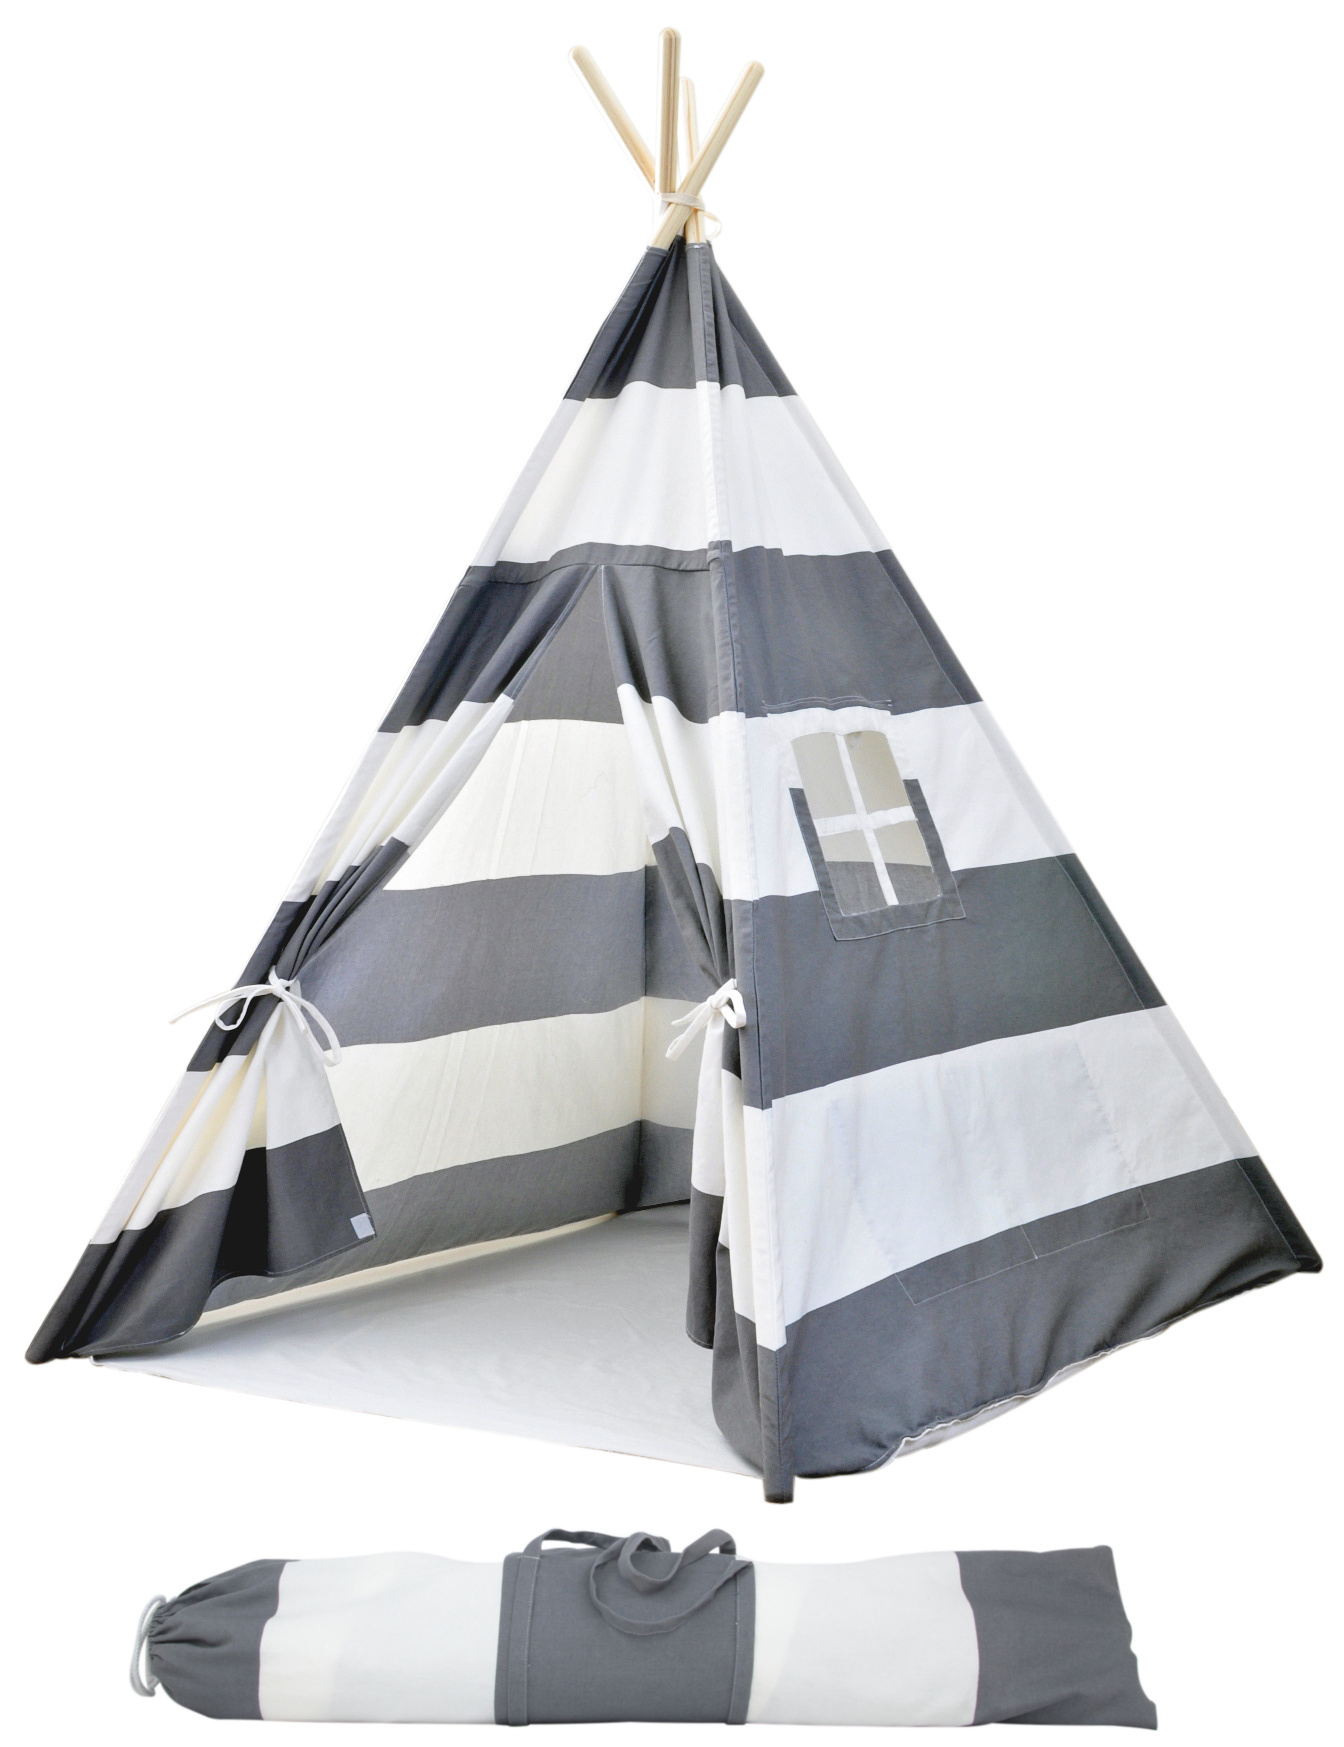 Portable Canvas Teepee Tents for Kids with Carrying Case Large Gray Stripes - A Mustard Seed Toys  sc 1 st  A Mustard Seed Toys & Portable Canvas Teepee Tents for Kids with Carrying Case Large ...